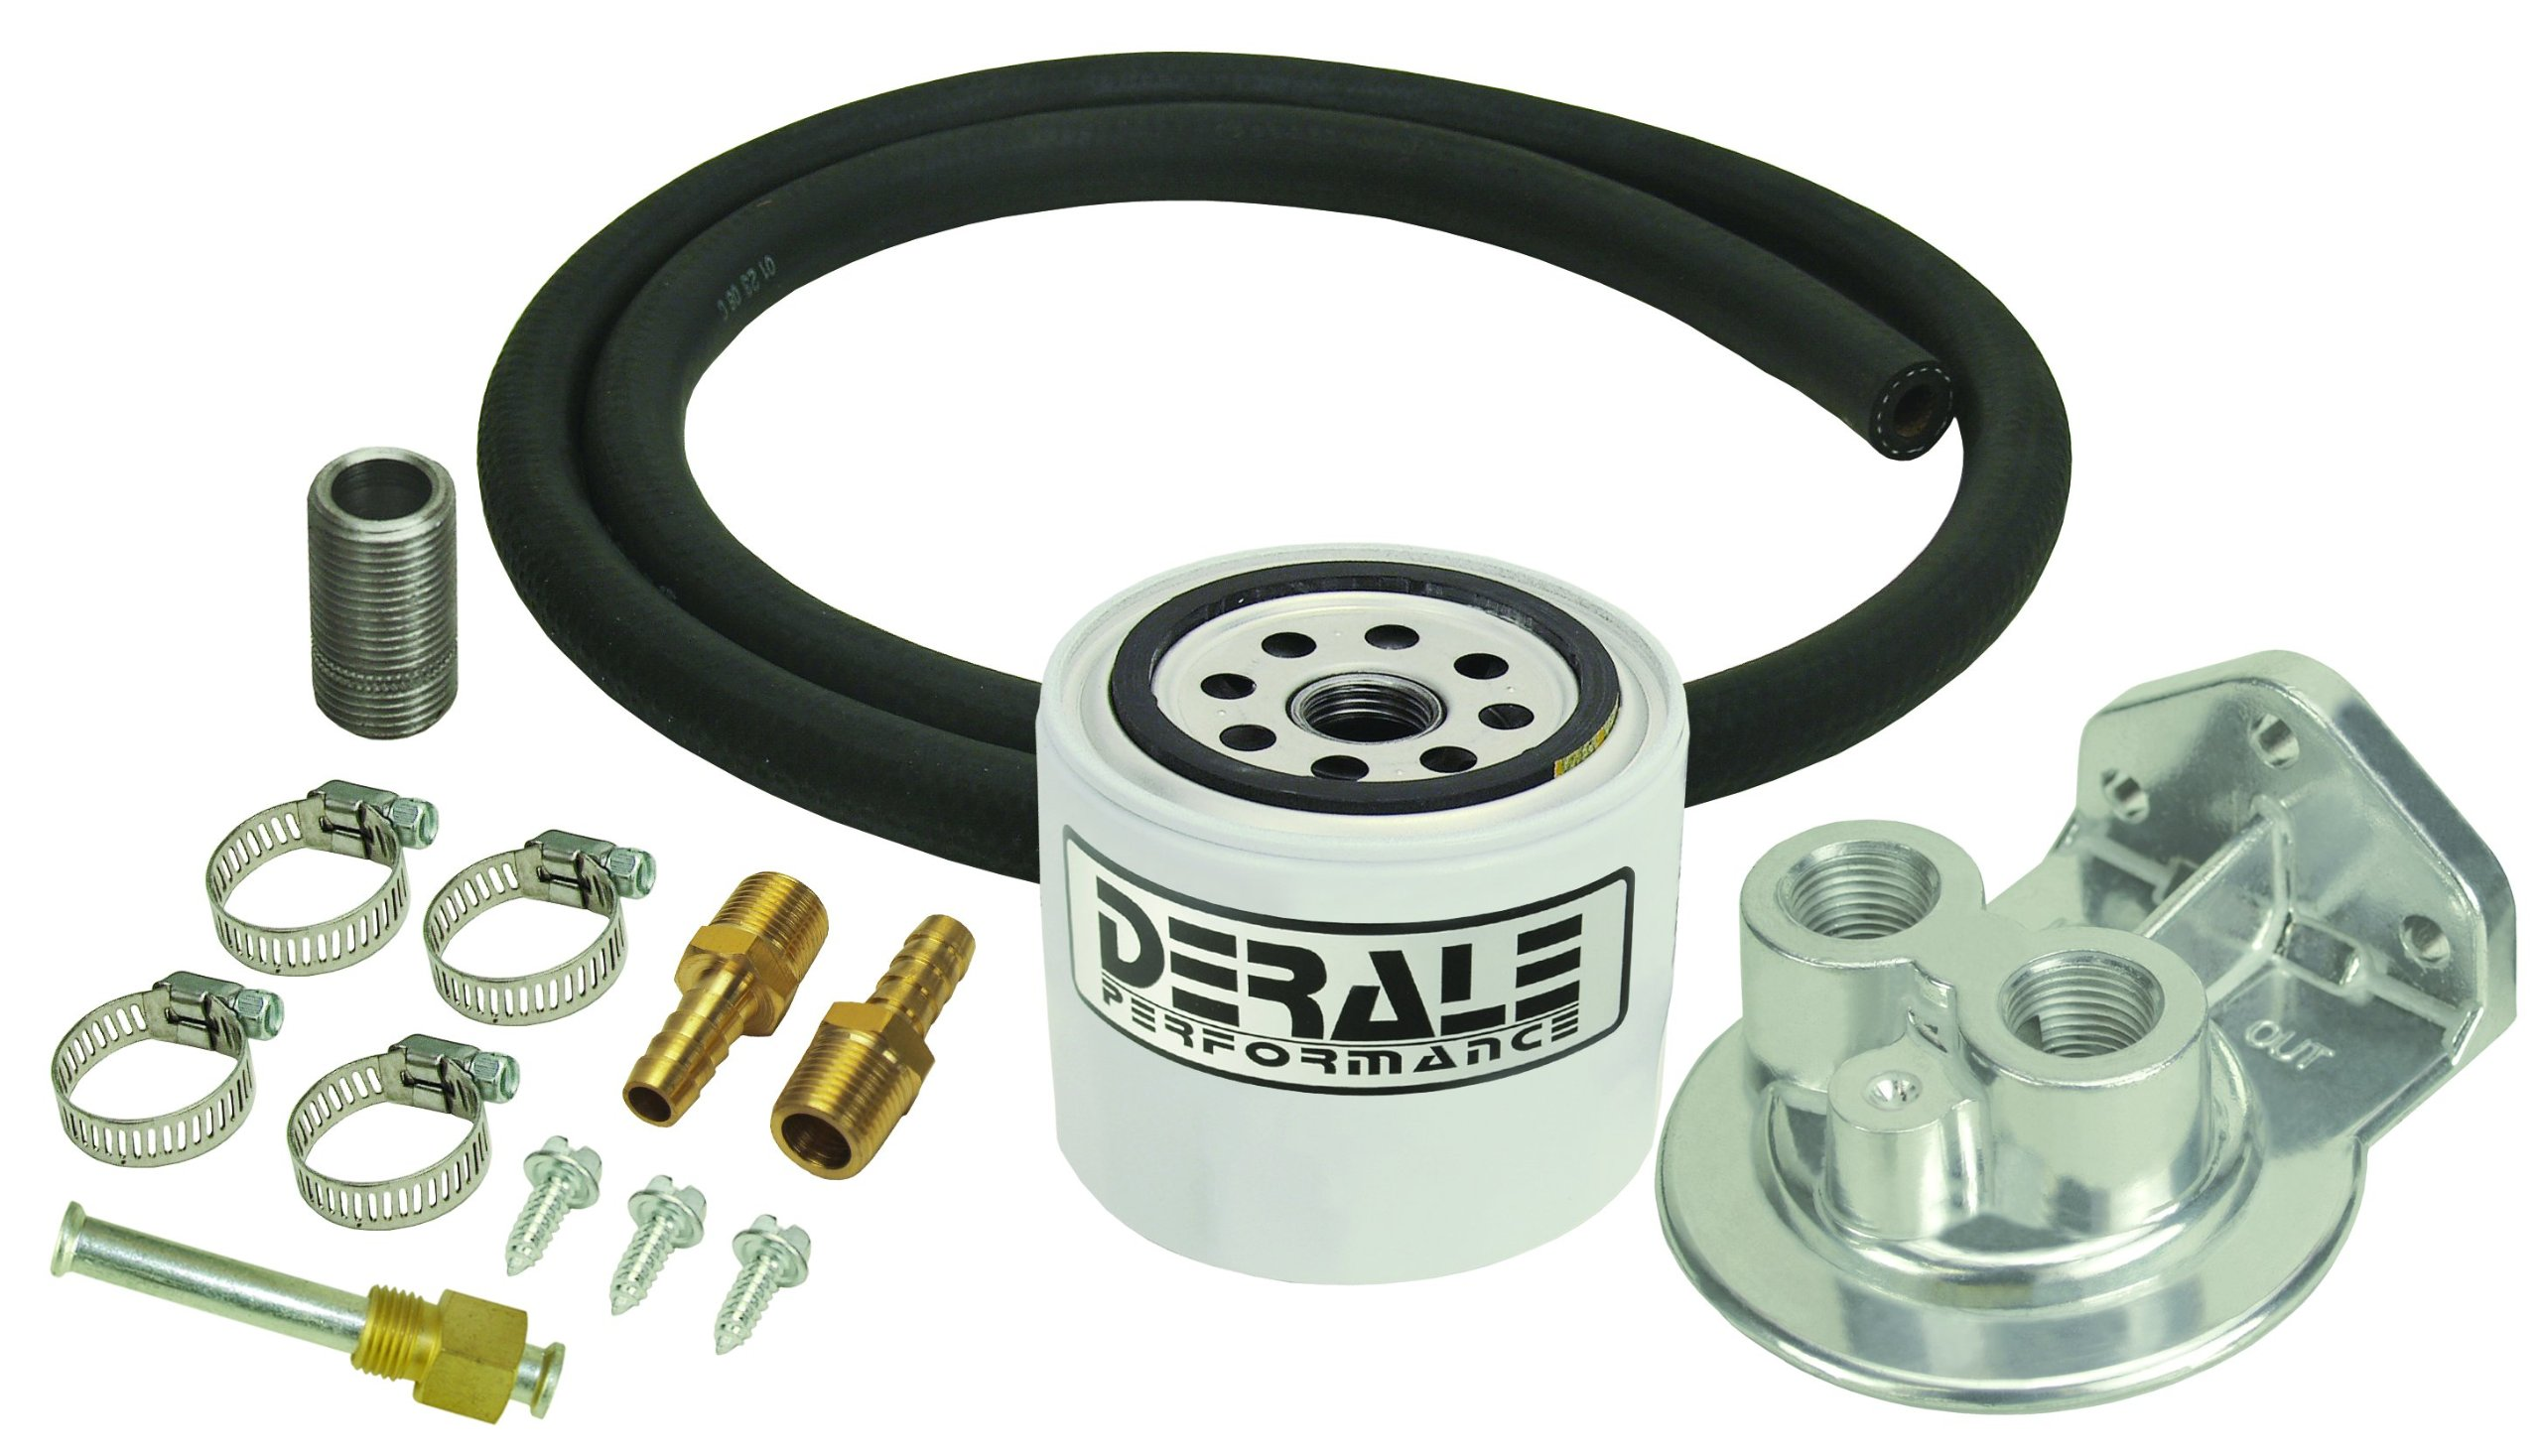 Derale 13090 Transmission Filter Kit by Derale